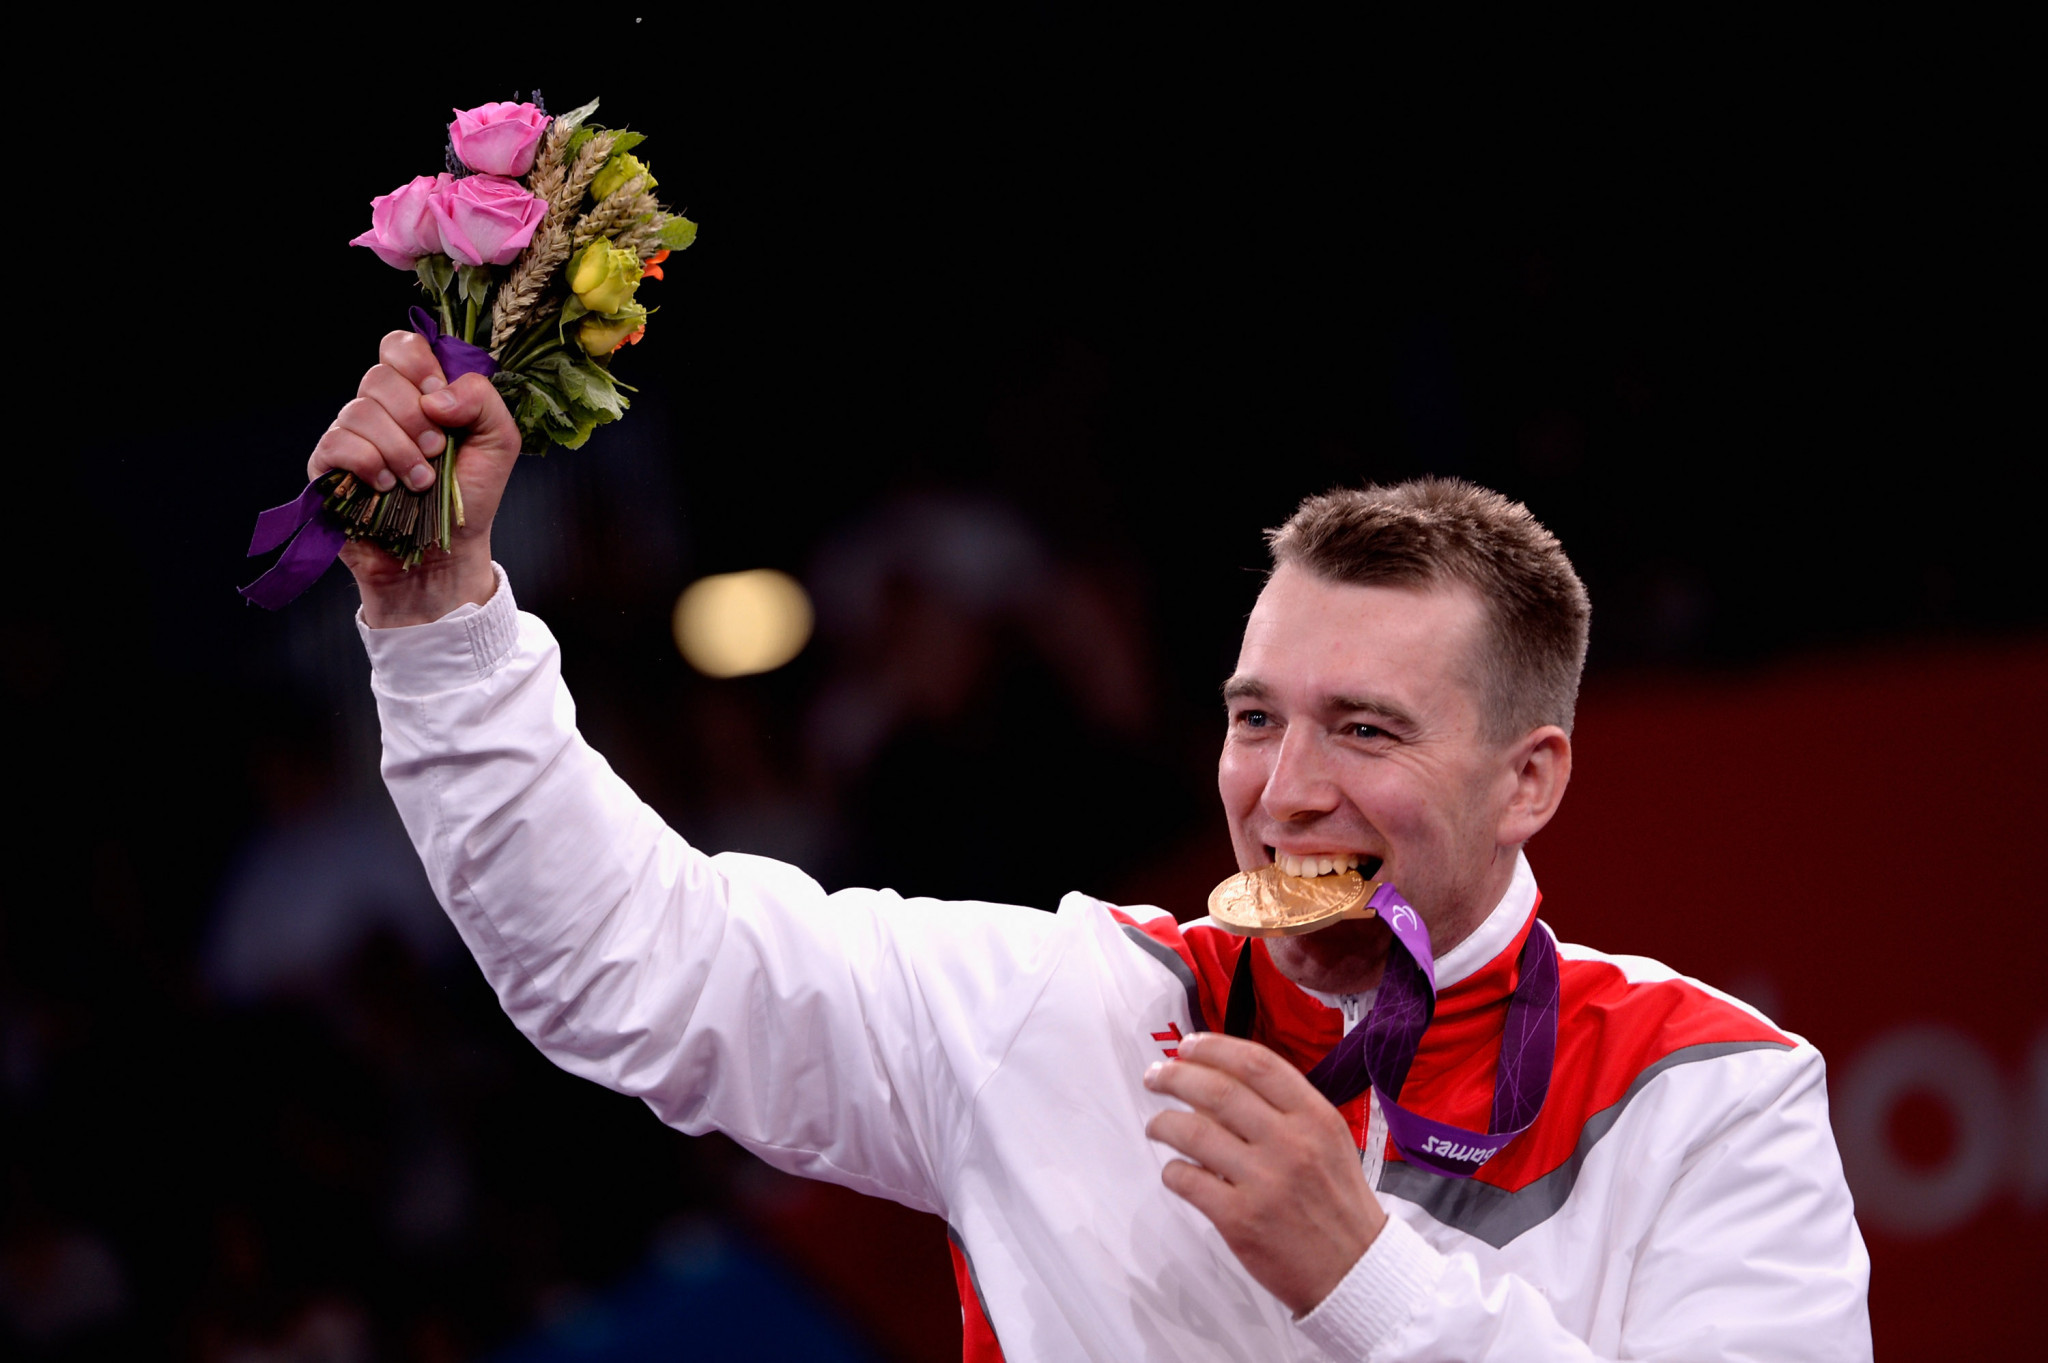 London 2012 Paralympic champion Grzegorz Pluta of Poland won the men's sabre category B at the IWAS Wheelchair Fencing World Cup in Pisa ©Getty Images